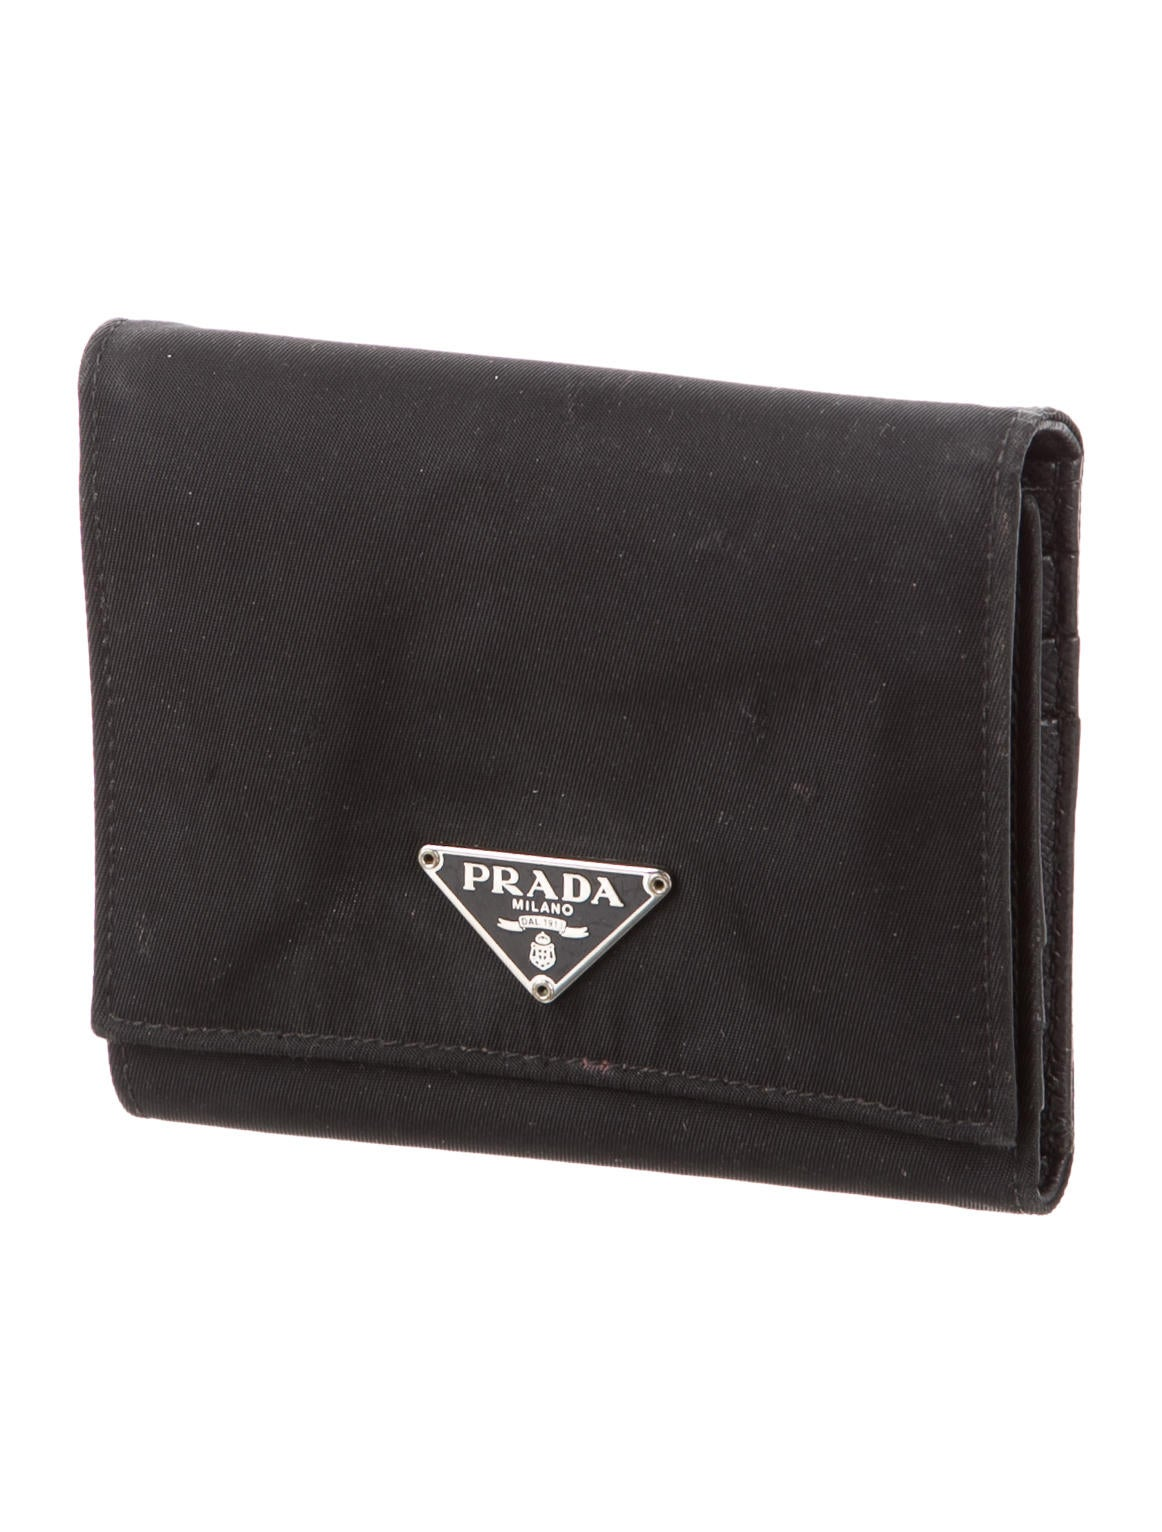 ab4b6349c1430f Prada Trifold Wallet Price | Stanford Center for Opportunity Policy ...